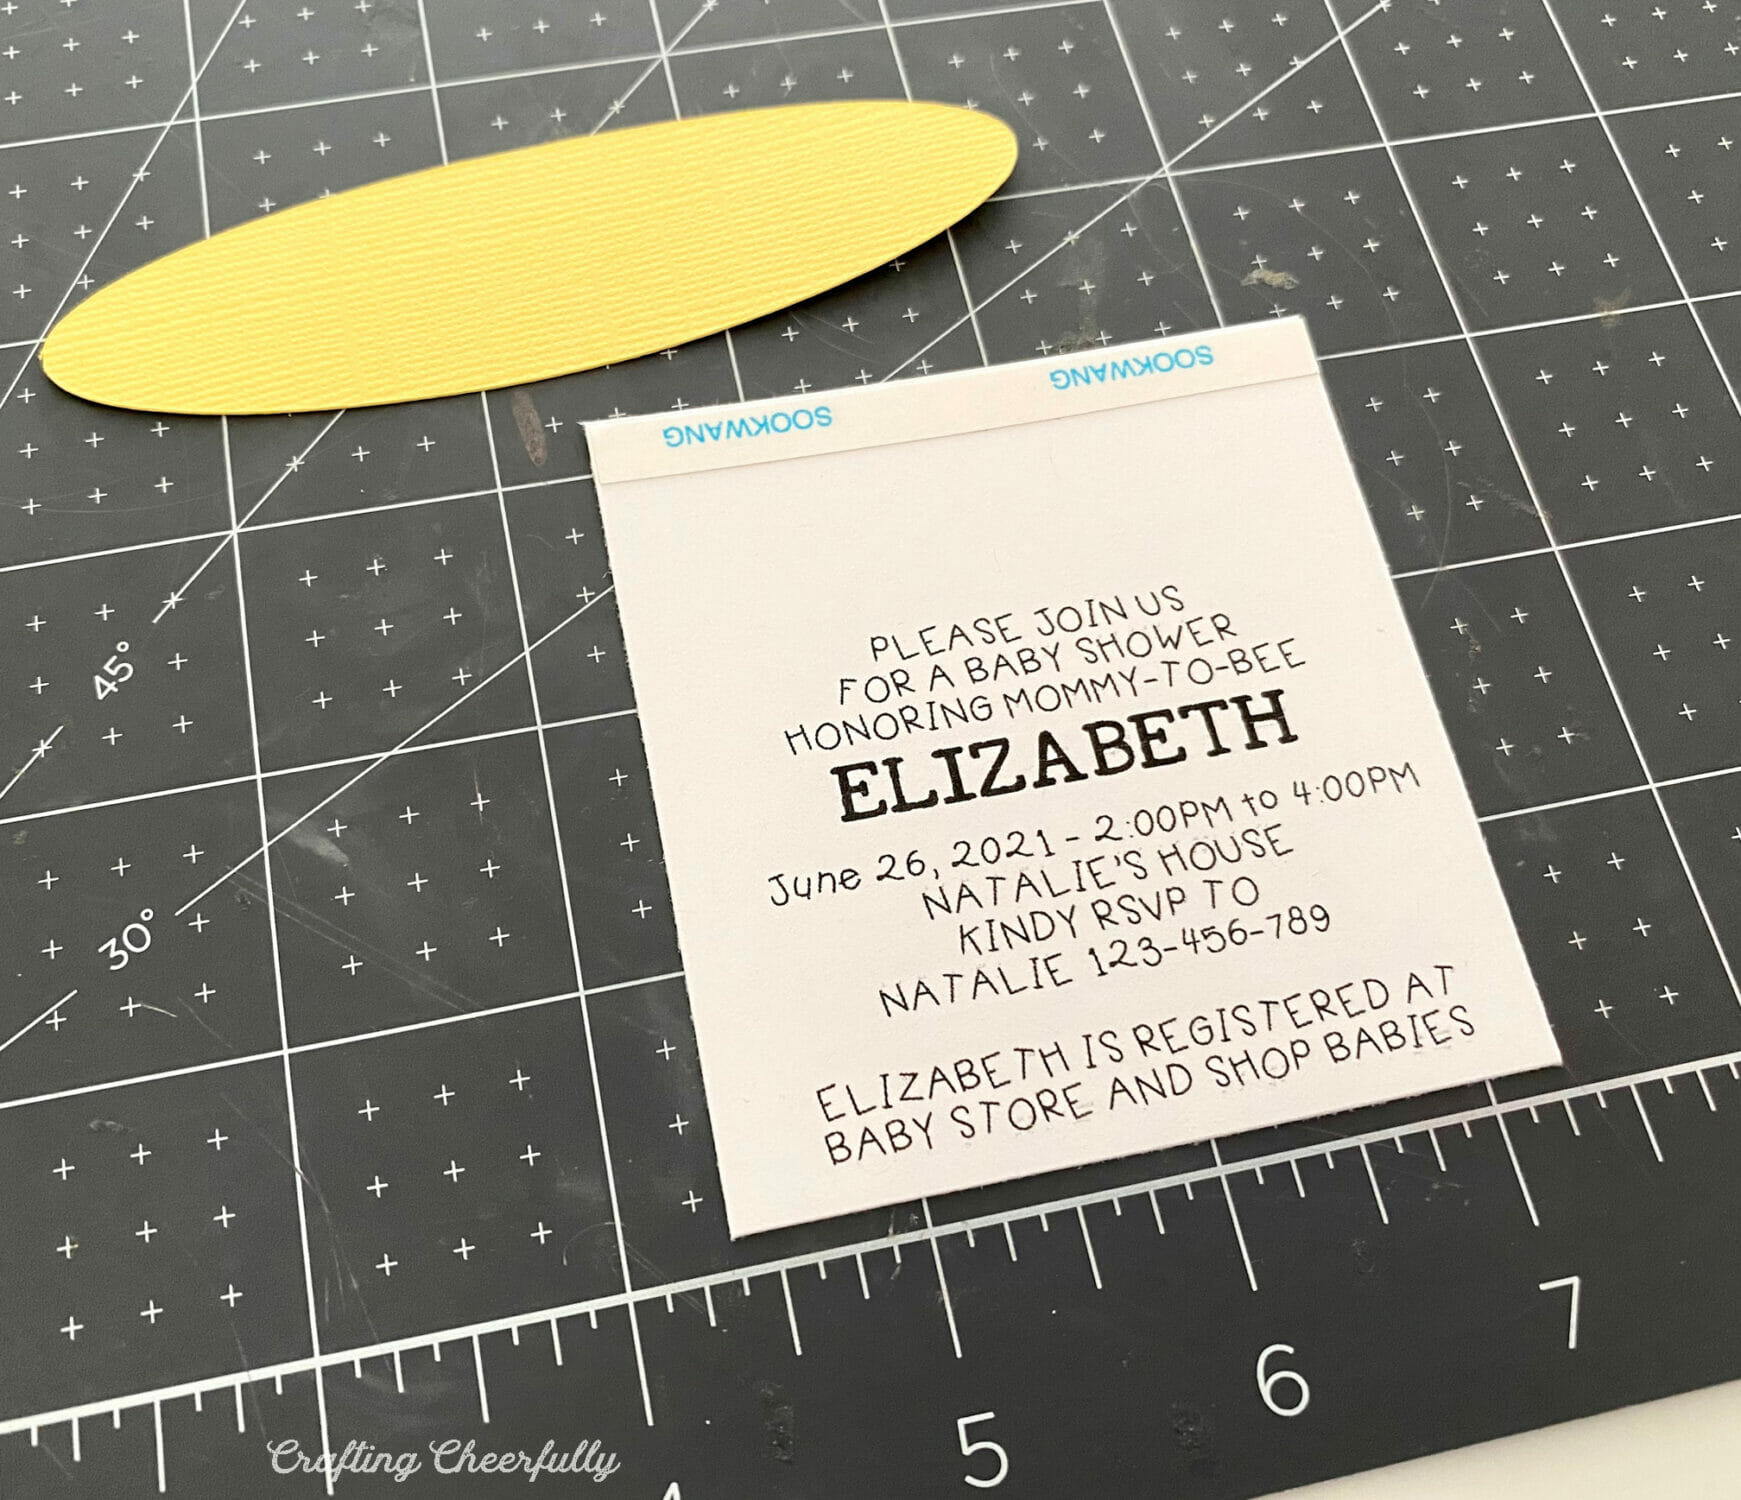 Insert with invitation wording on it lays on a black mat.